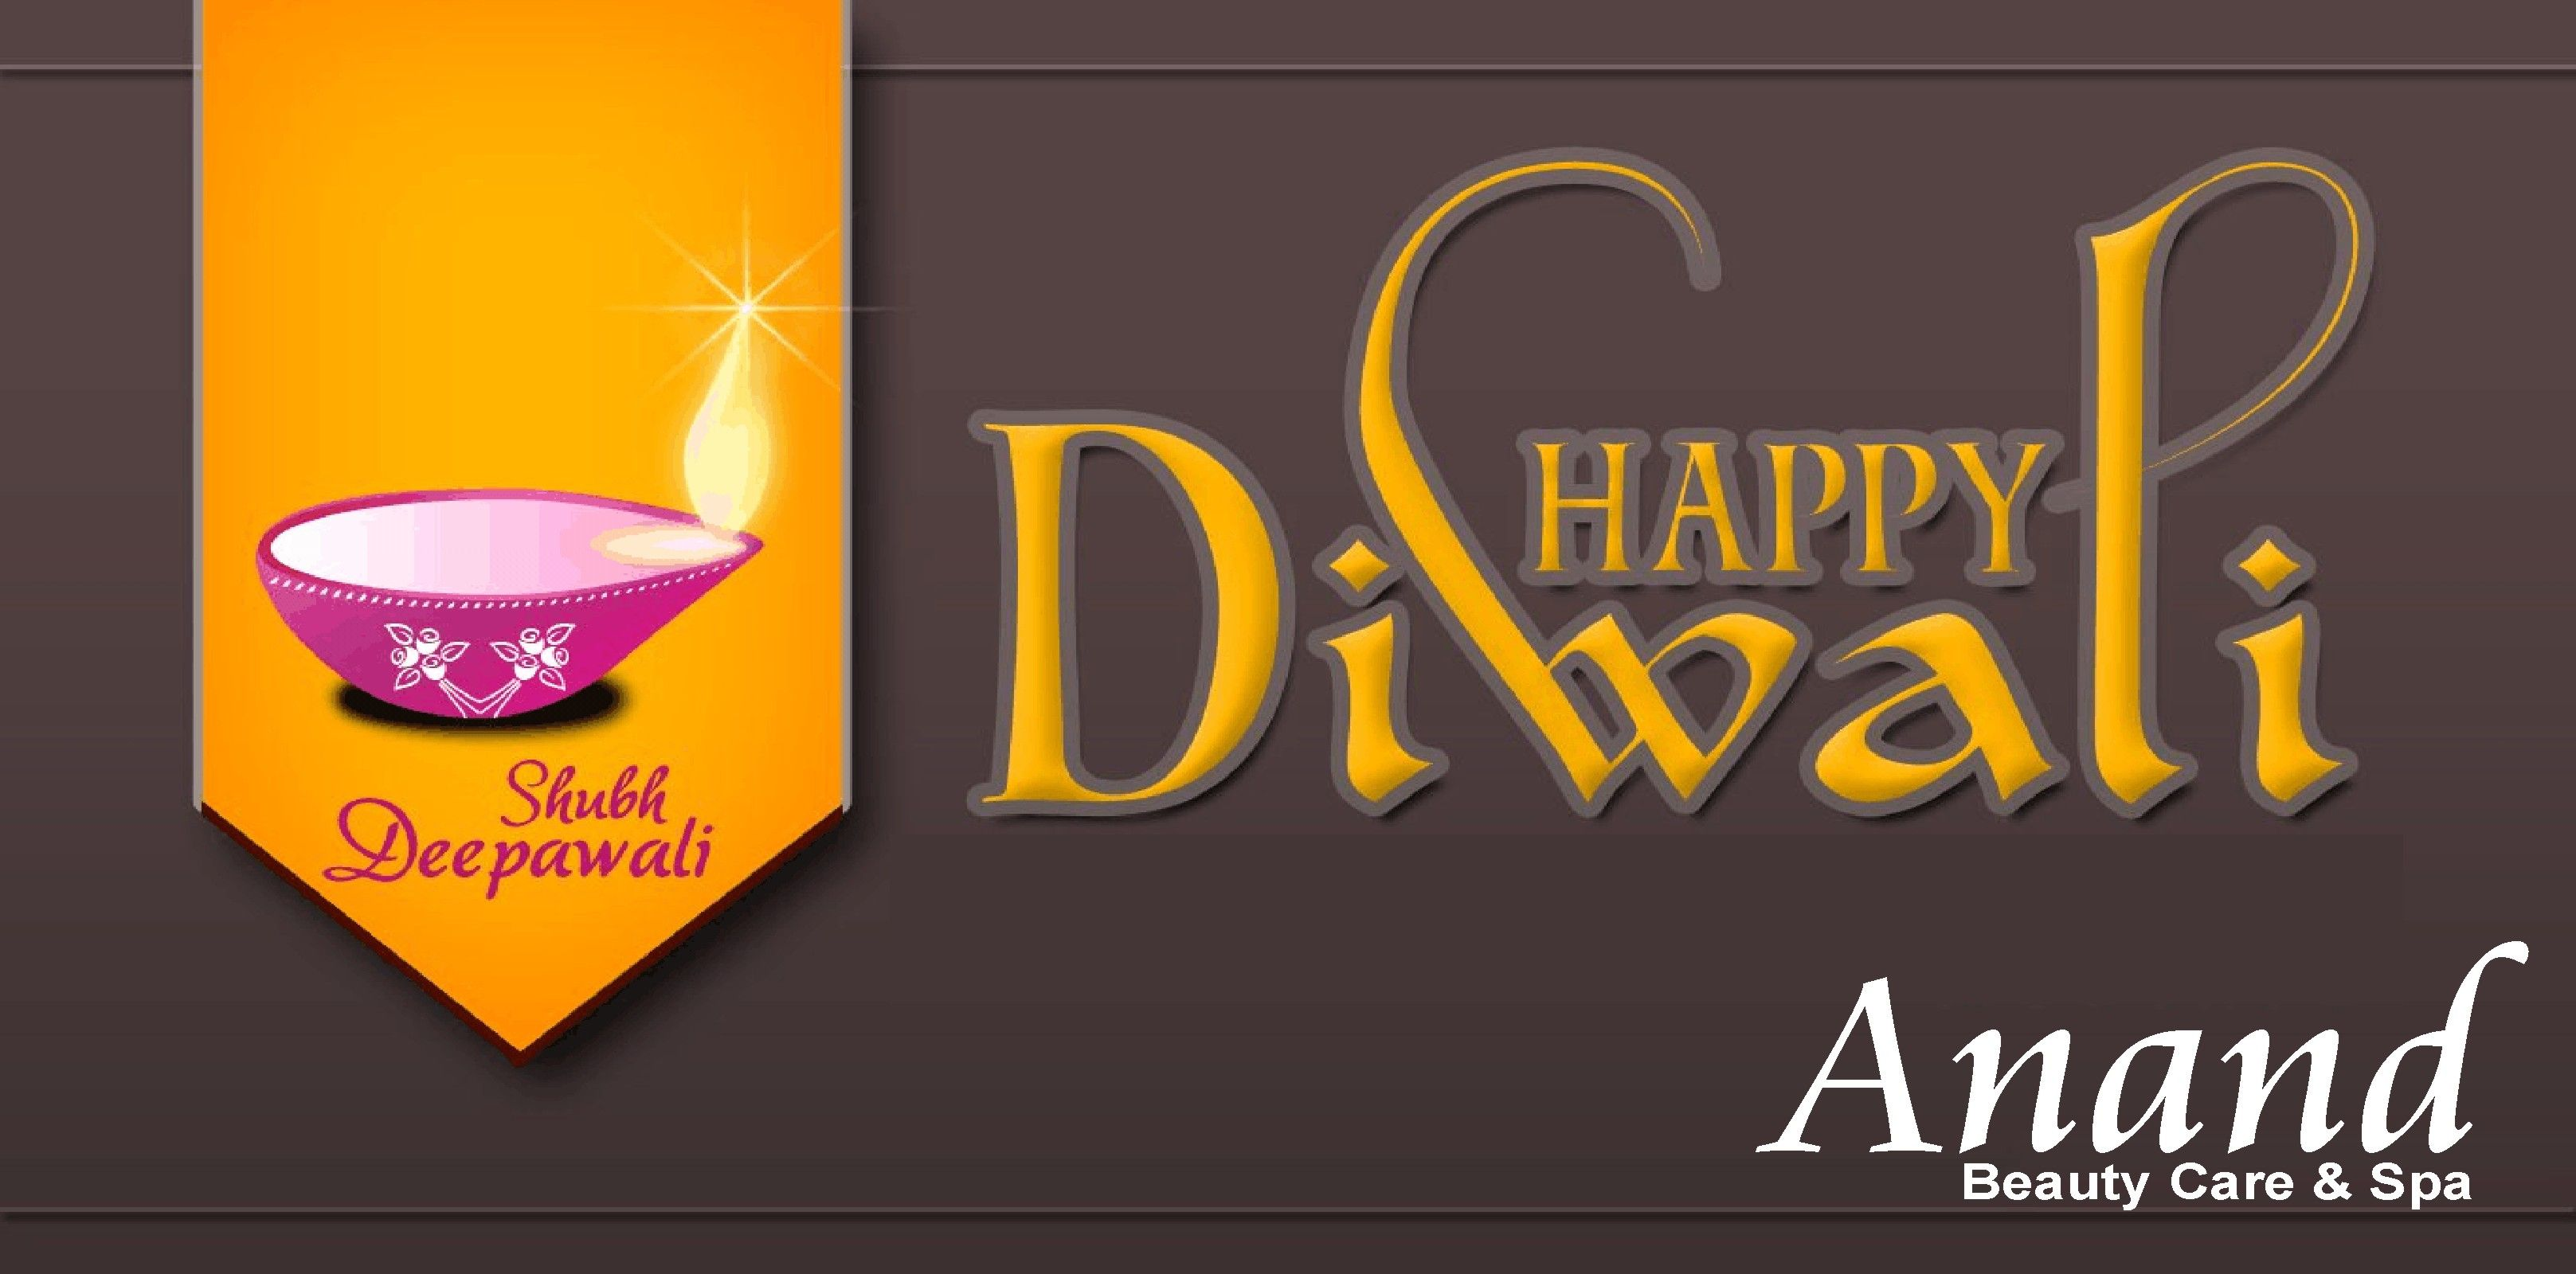 Banner Anand Beauty Care Pinterest Happy Diwali Diwali And